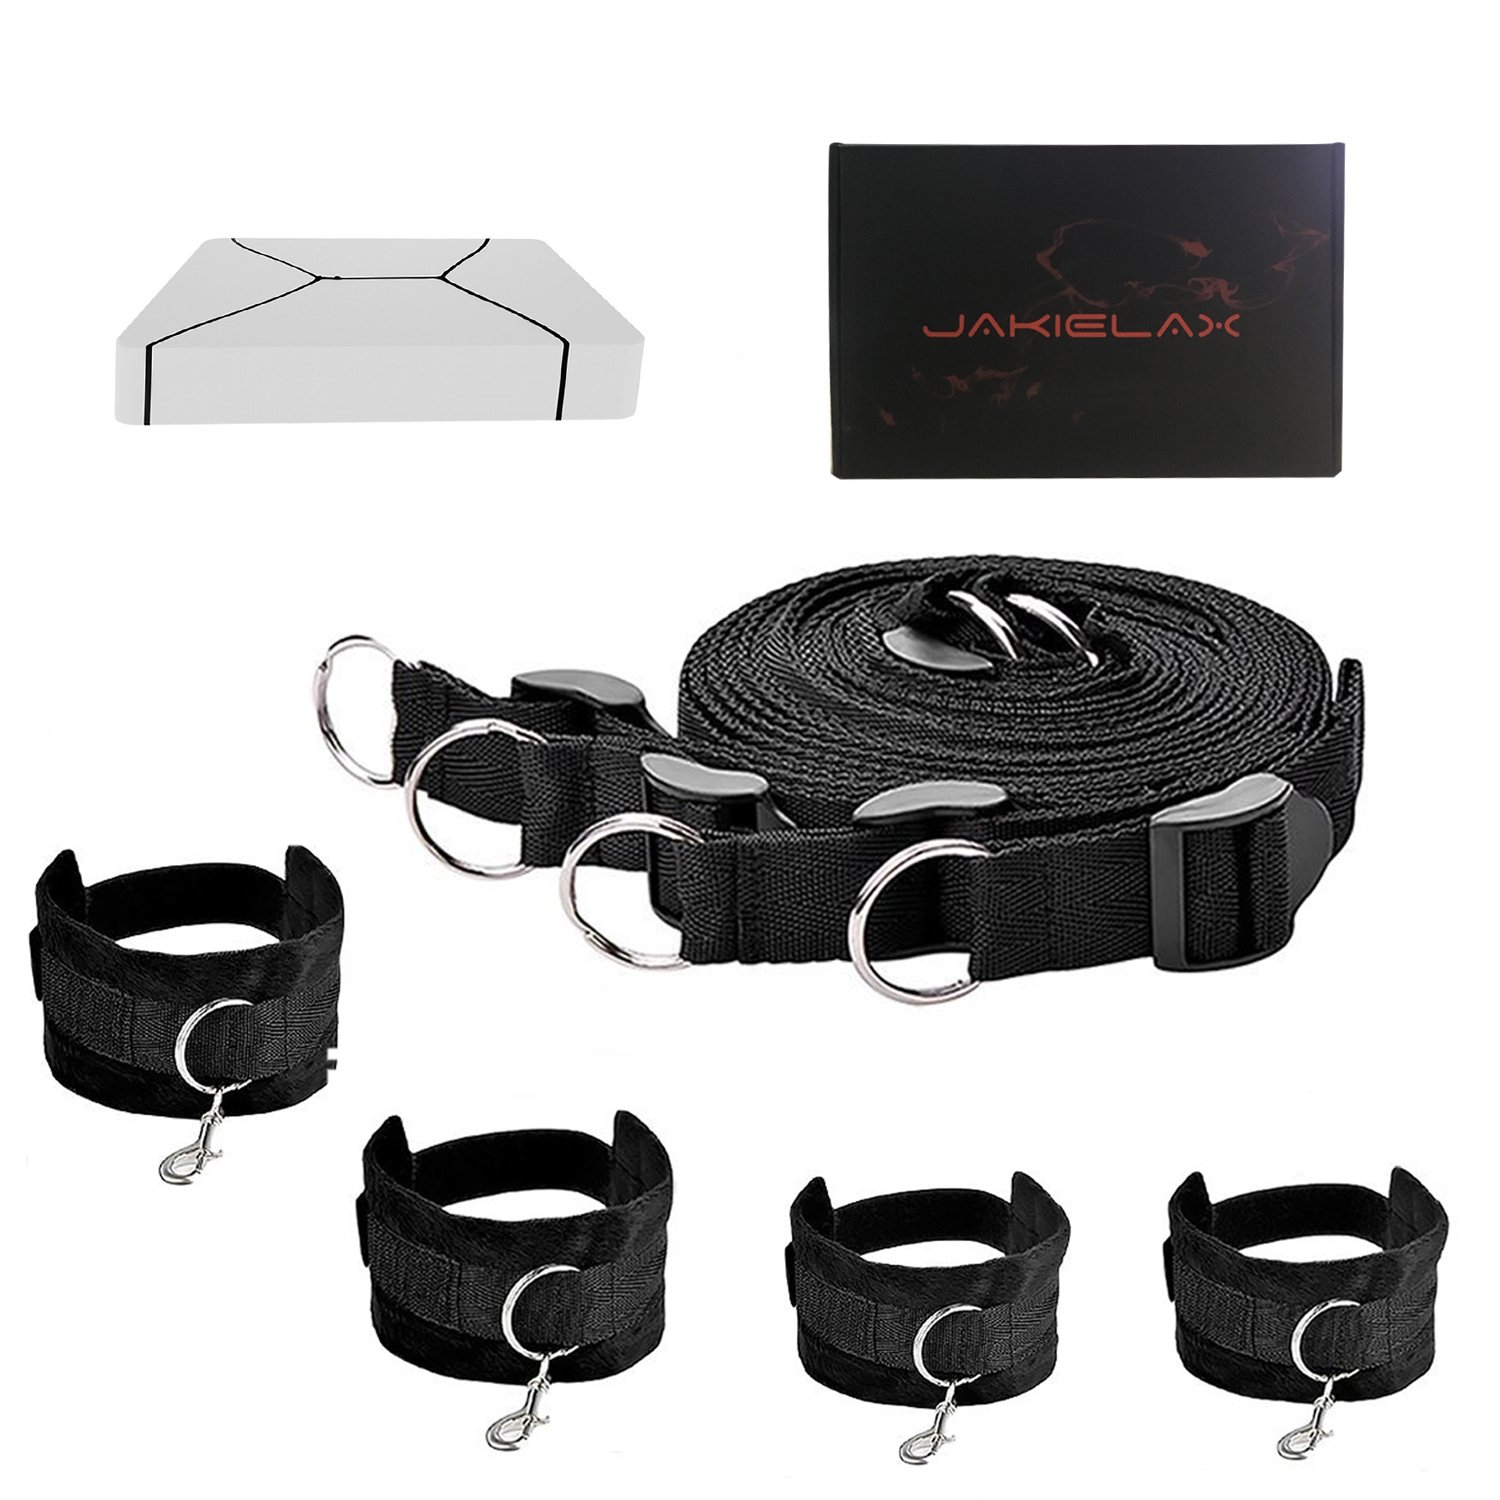 JAKIELAX Bed Restraint Straps Kits with Adjustable Fur Wrist and Ankle Cuffs Exercise Bands